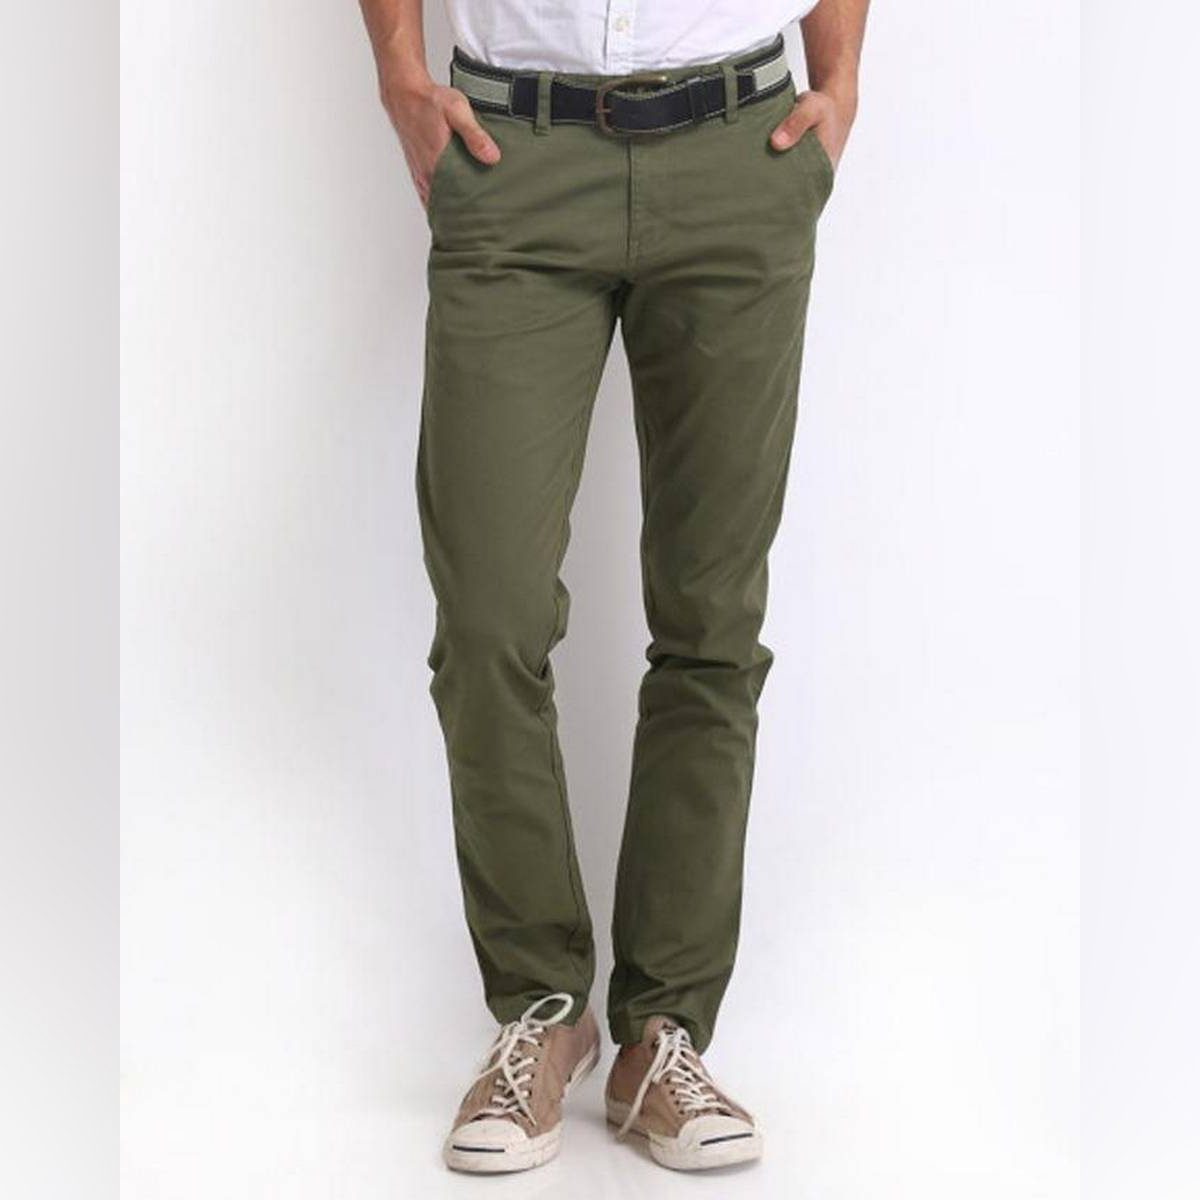 Olive Green Cotton Men's Chino Slim Fit